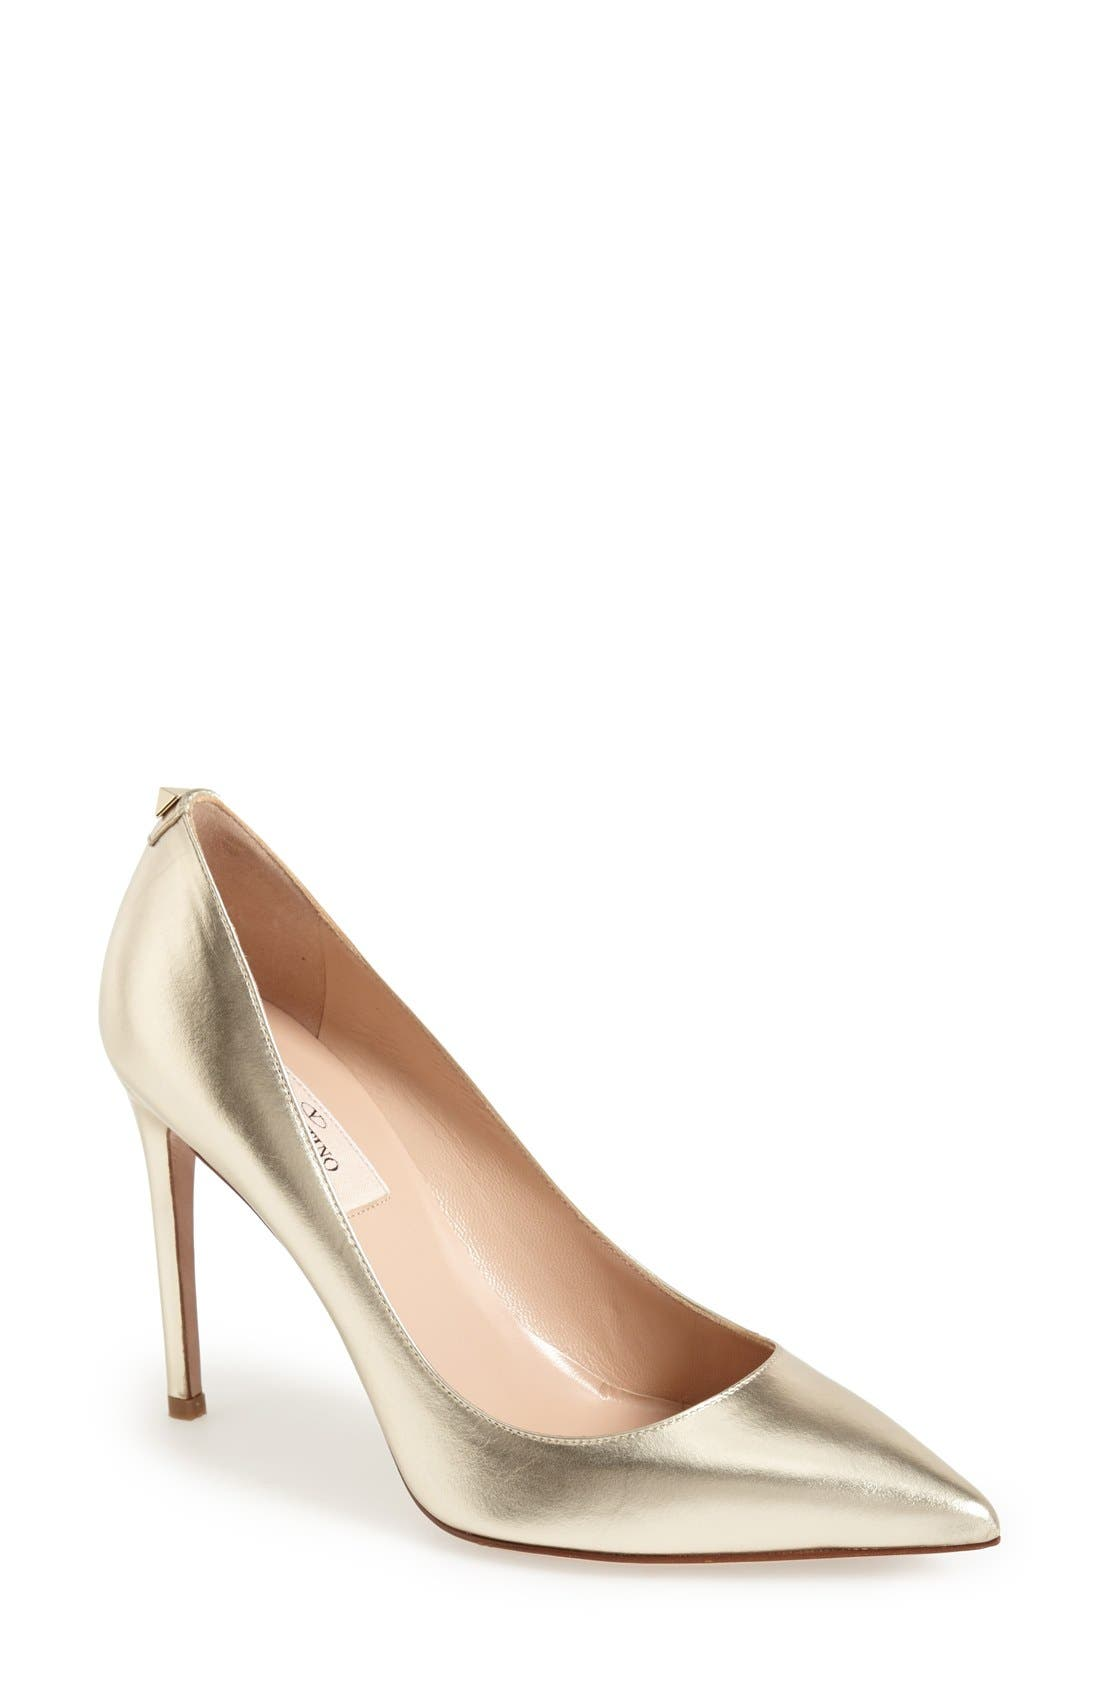 'Rockstud' Pump,                             Main thumbnail 1, color,                             Platino